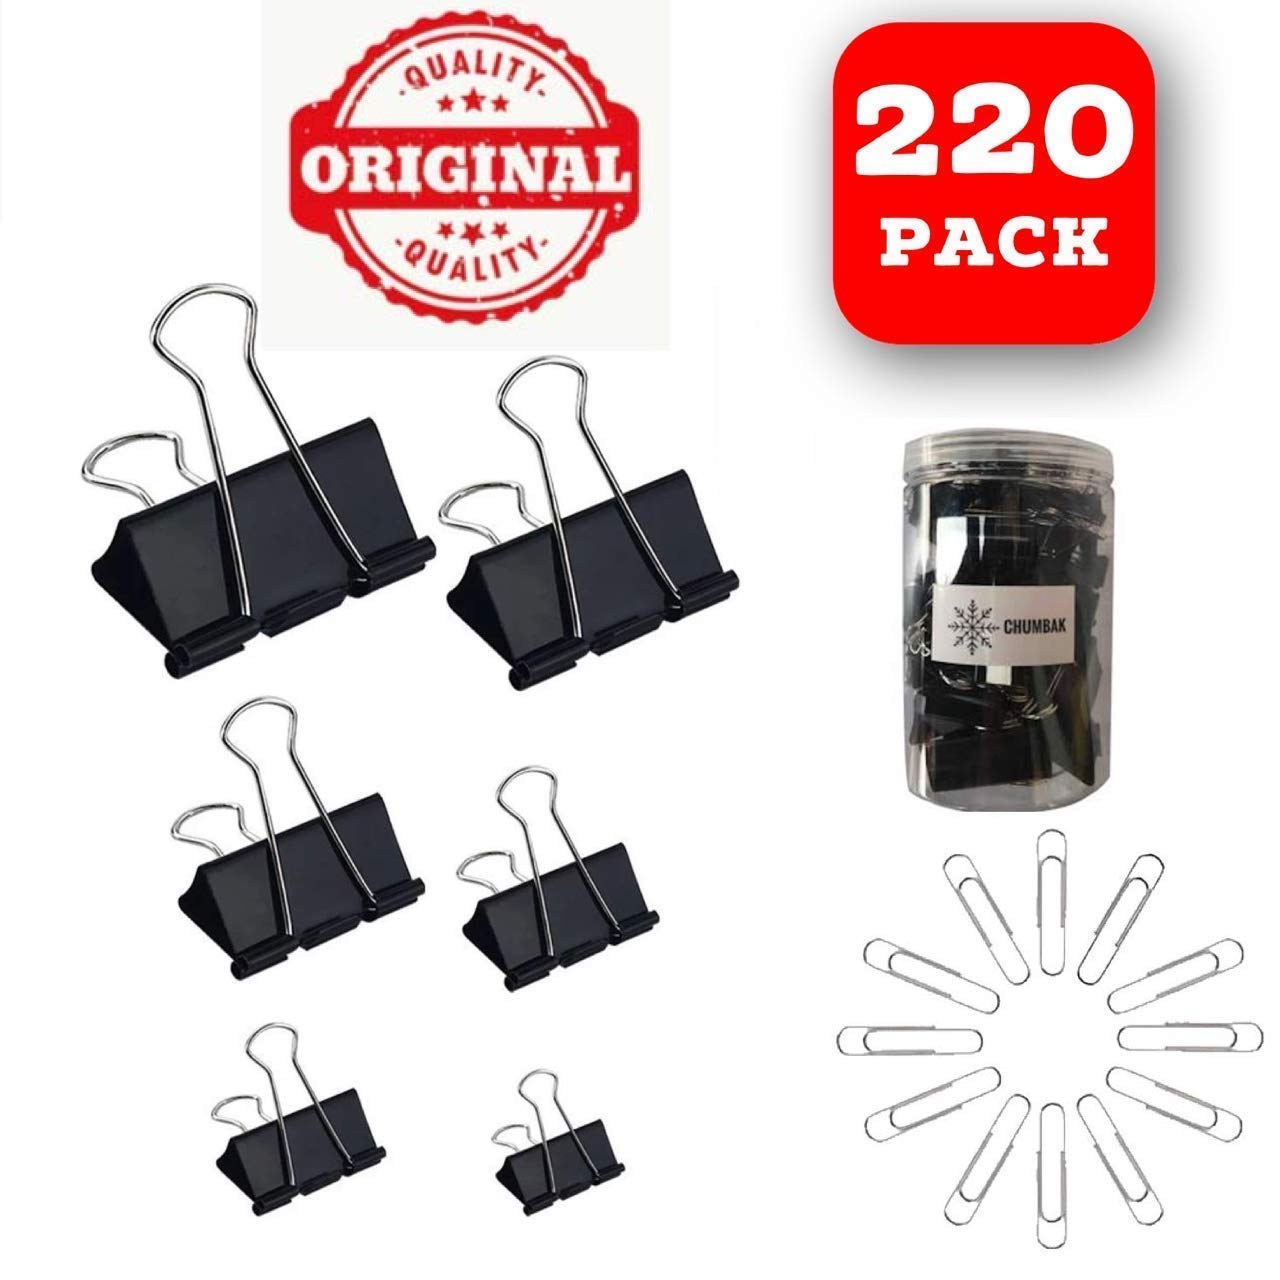 X Small and Micro Binder Clips 120 Small Black 100 and Paper Clips X Large Paper Clamps Binder Clips Assorted Sizes 120 Count Medium Large